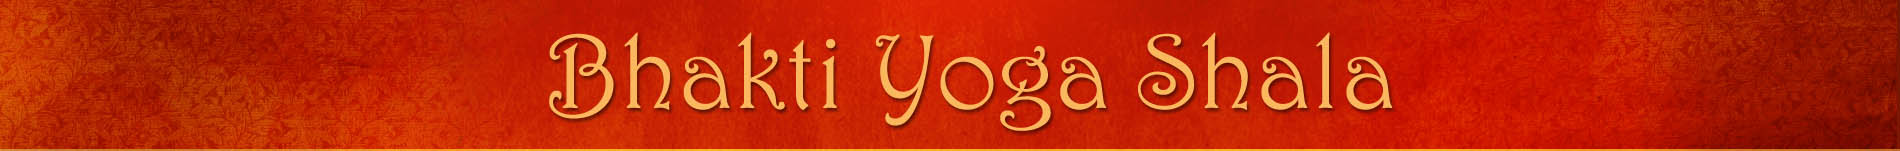 BHAKTI YOGA SHALA ONLINE - Now Streaming